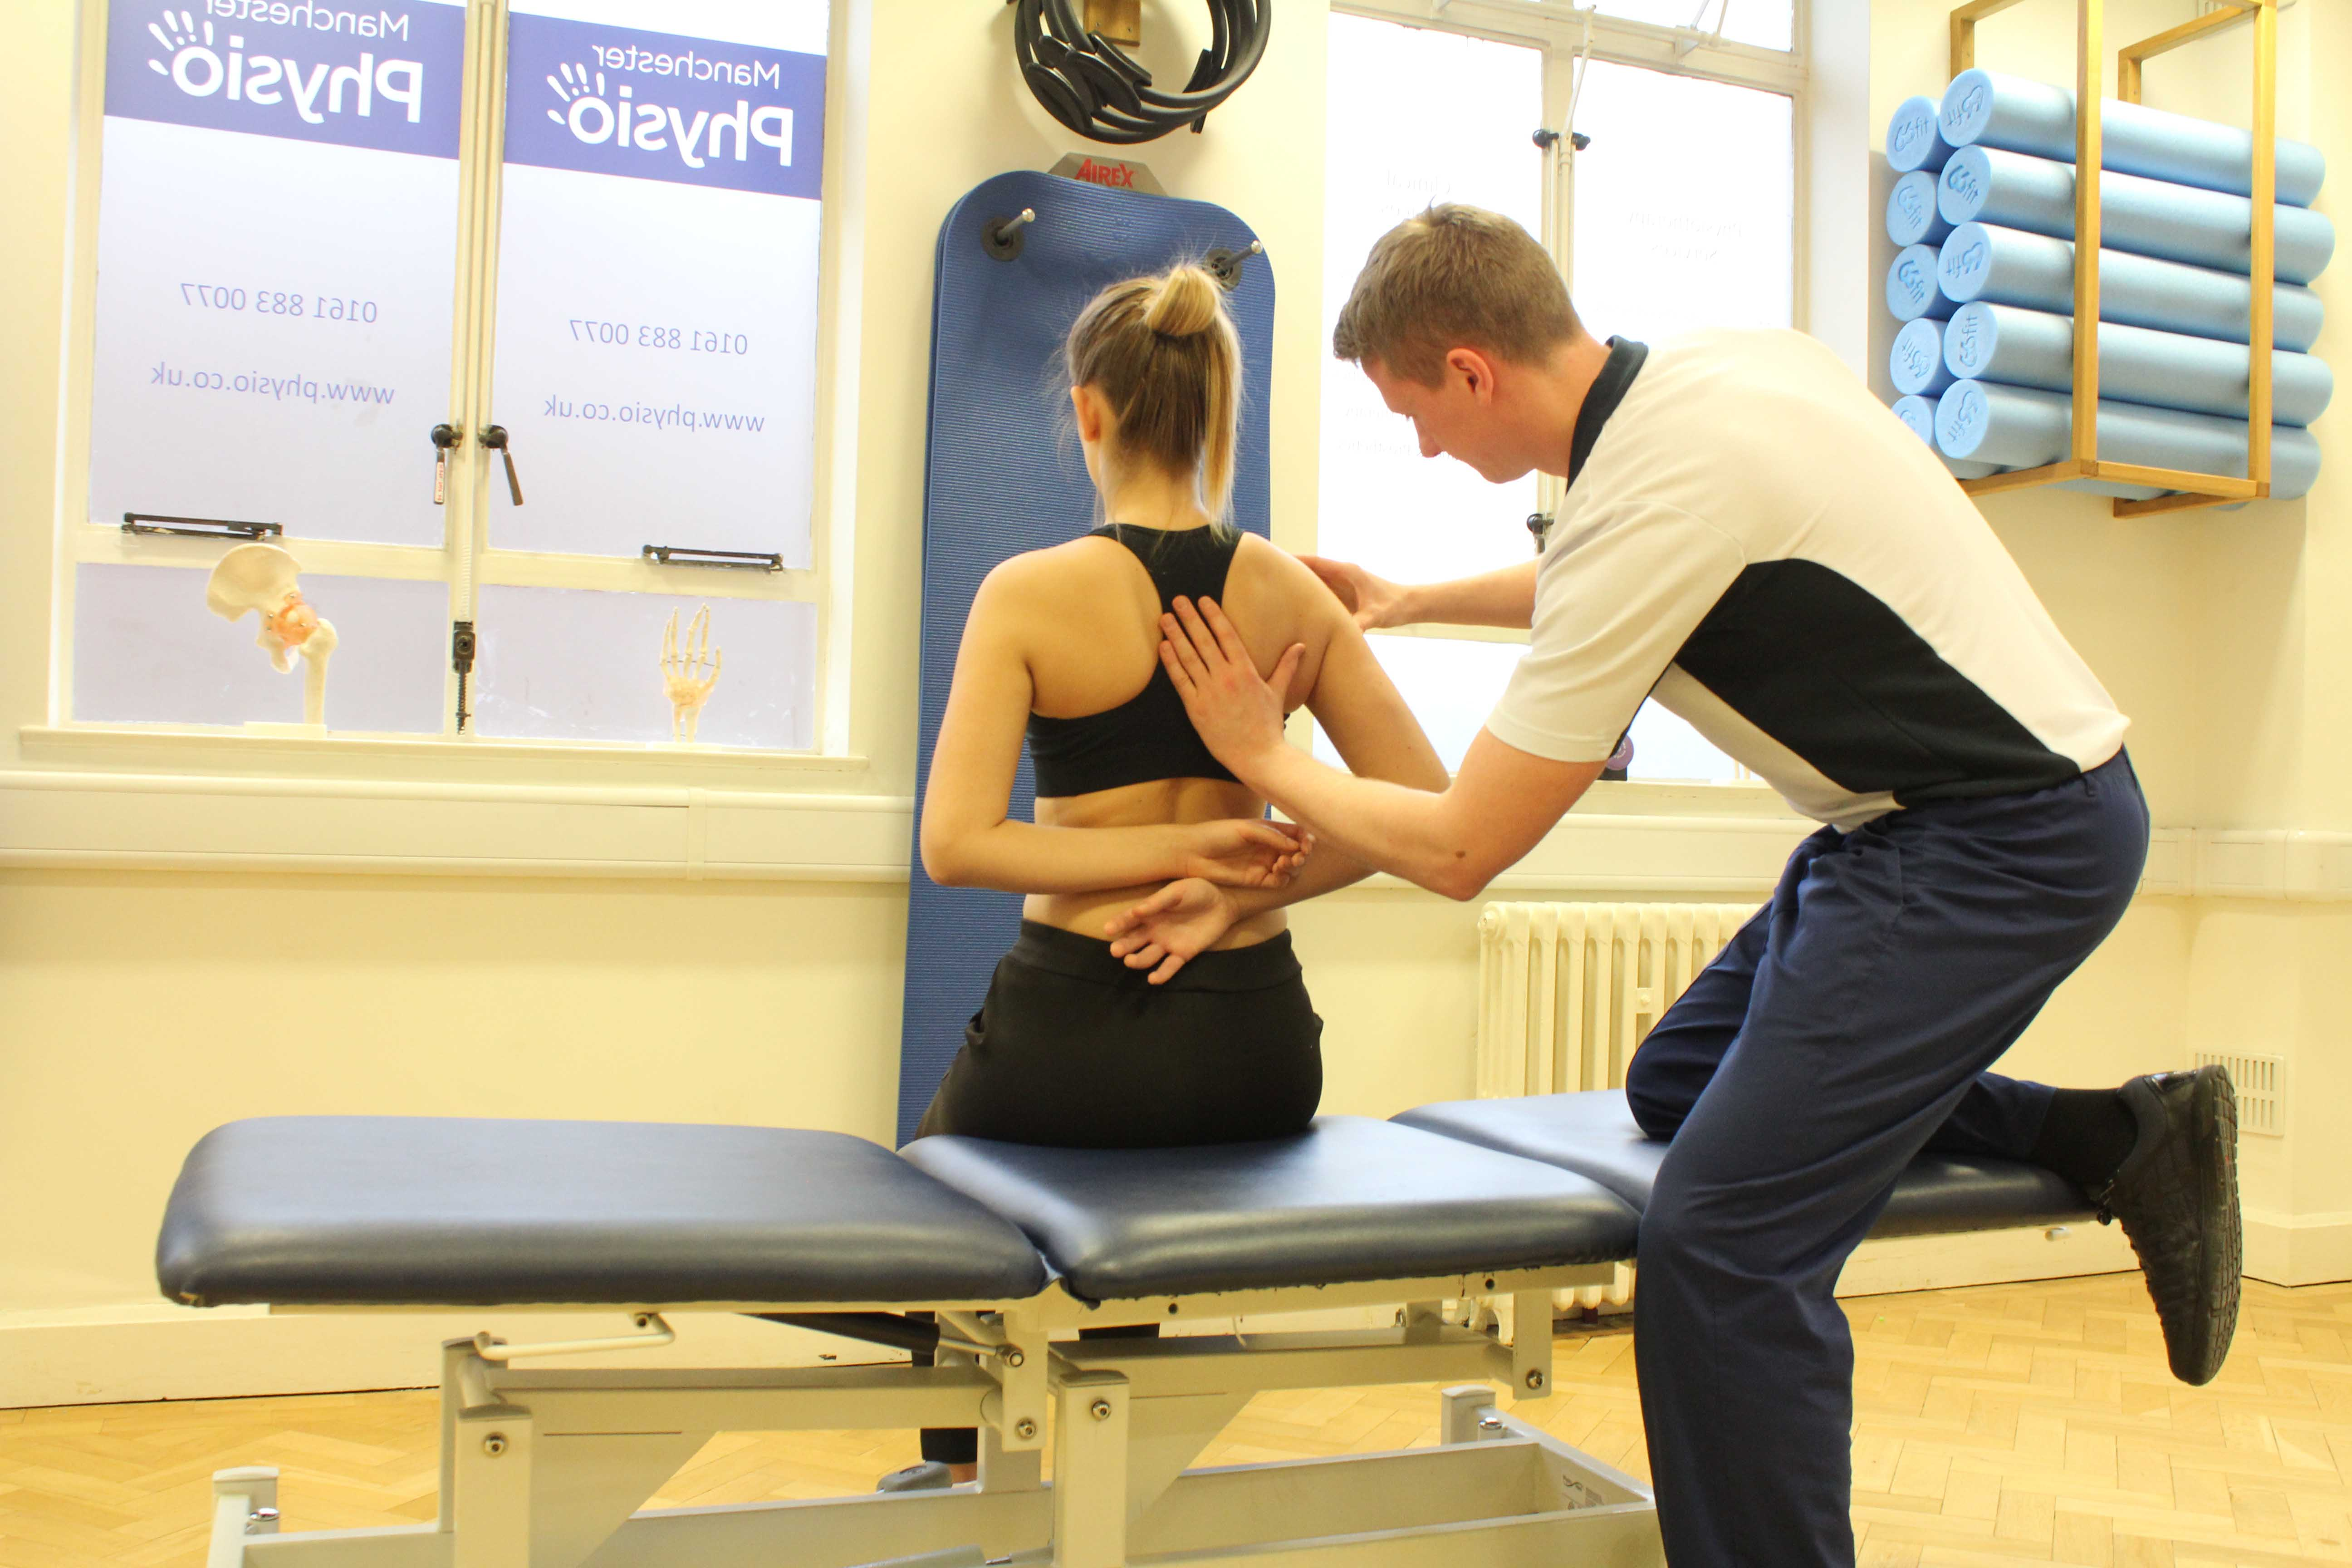 Scapula setting exercises conducted by experienced physiotherapist